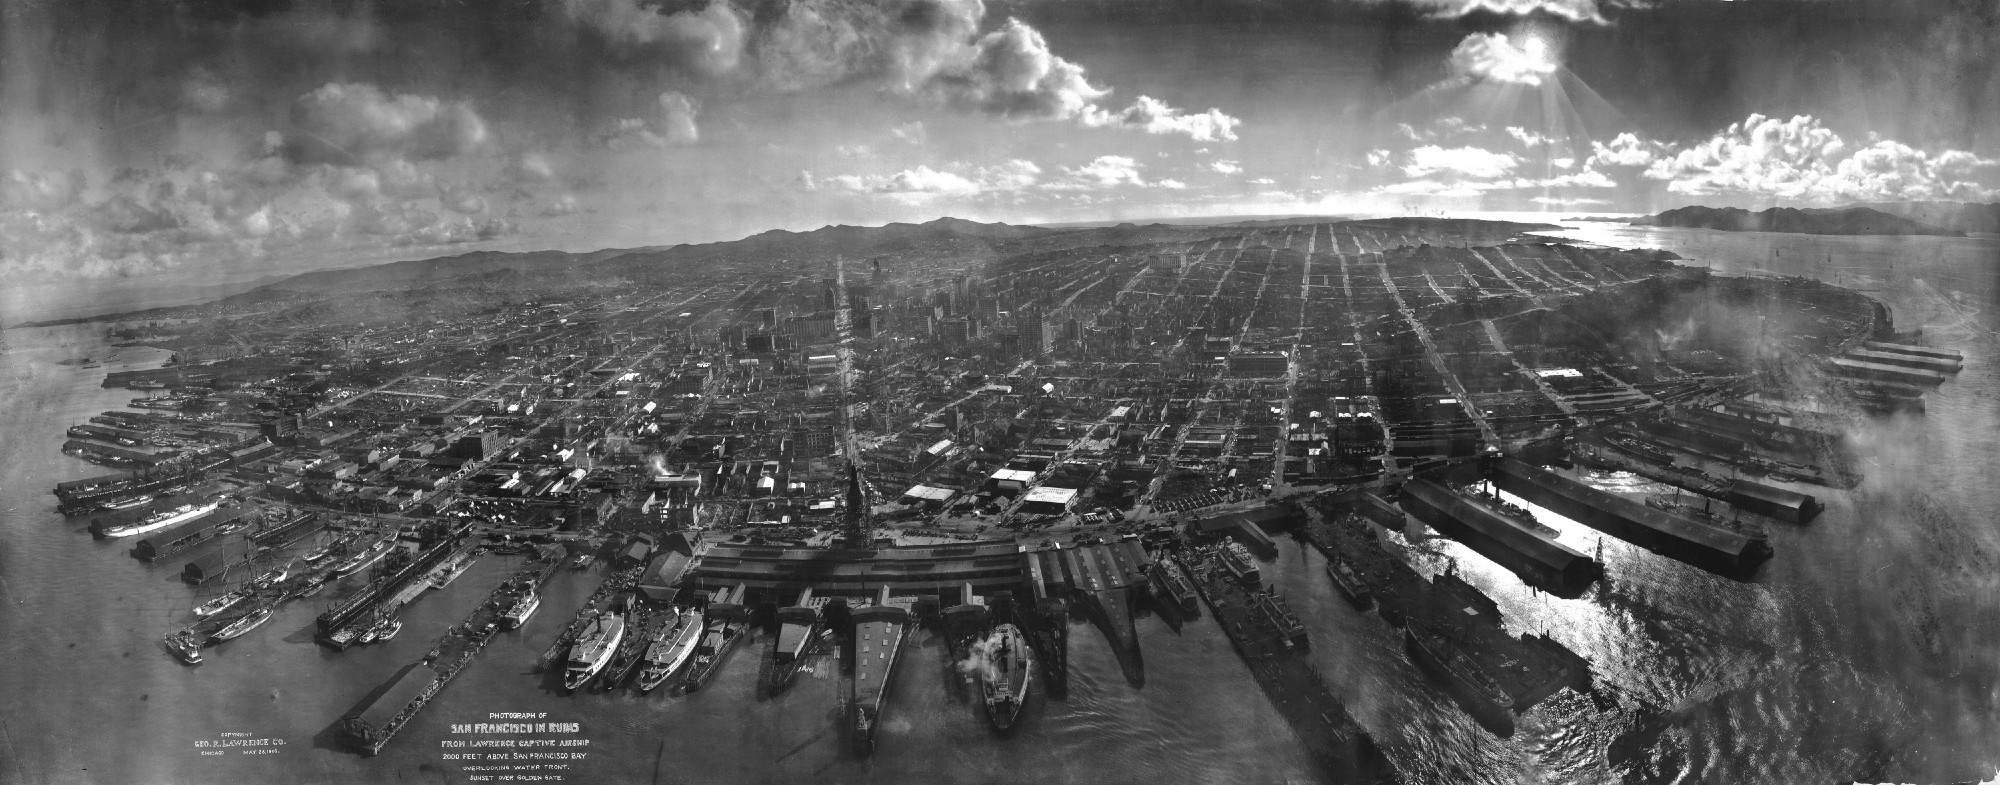 These Early Drone Photographs Were Made With An Amazing Airborne Rig